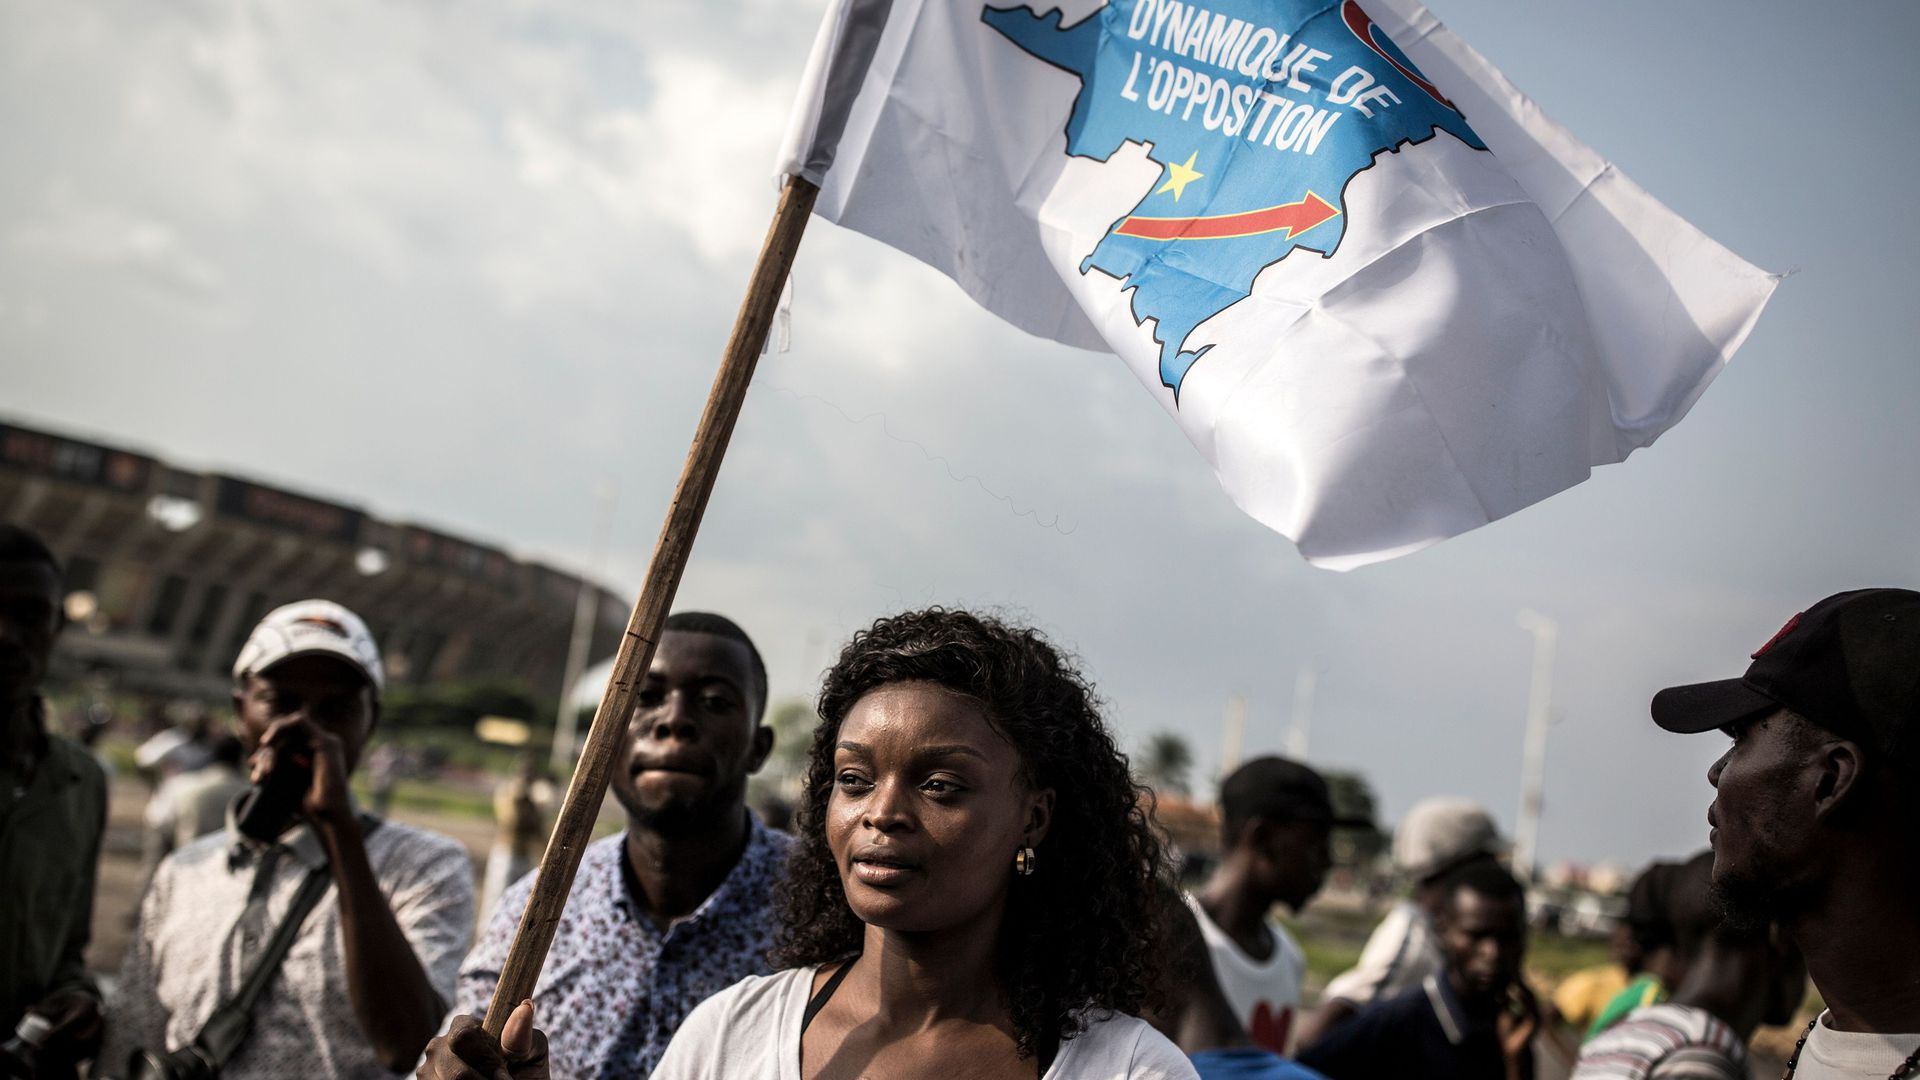 A supporter of Martin Fayulu, the runner up in the Democratic Republic of the Congo's elections, protests in Kinshasa, against the election of Felix Tshisekedi as president of the DRC.